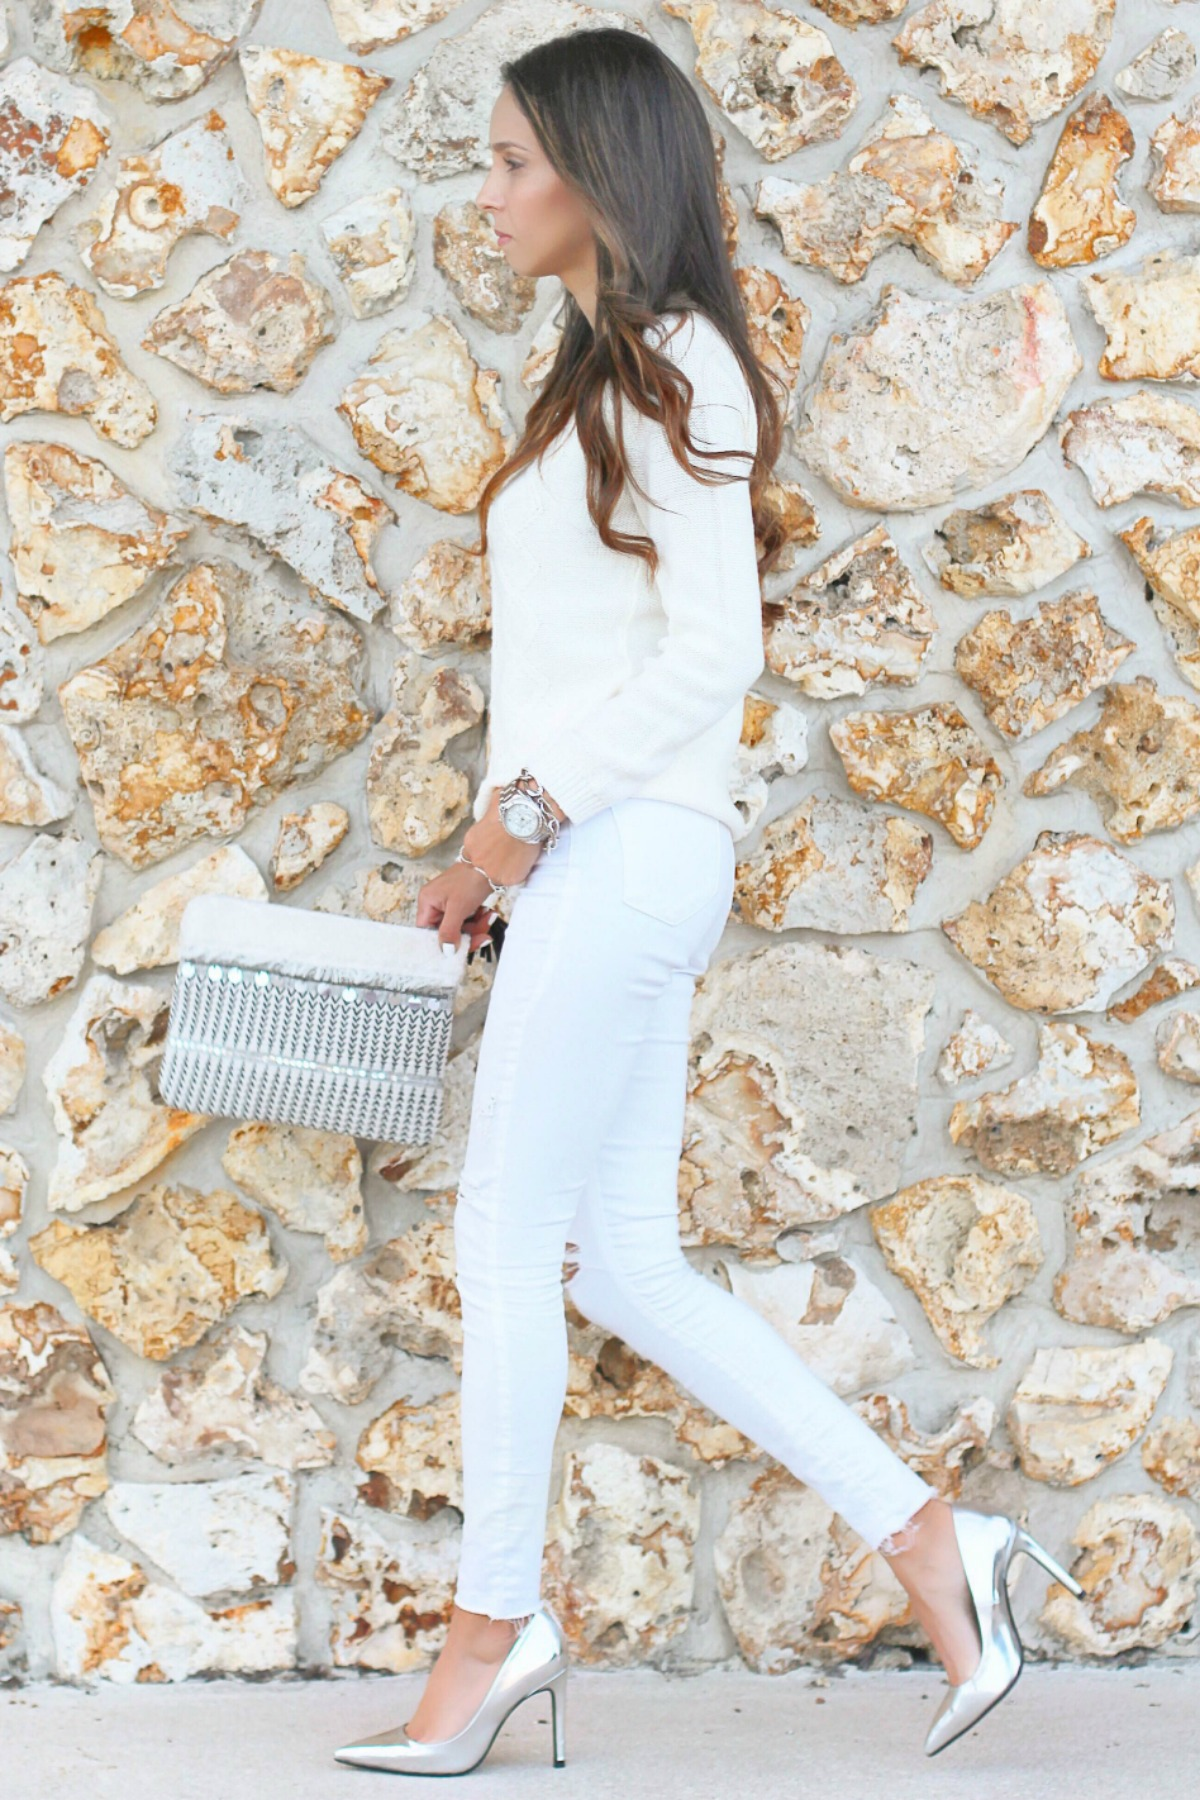 Winter Whites and Metallic Accents